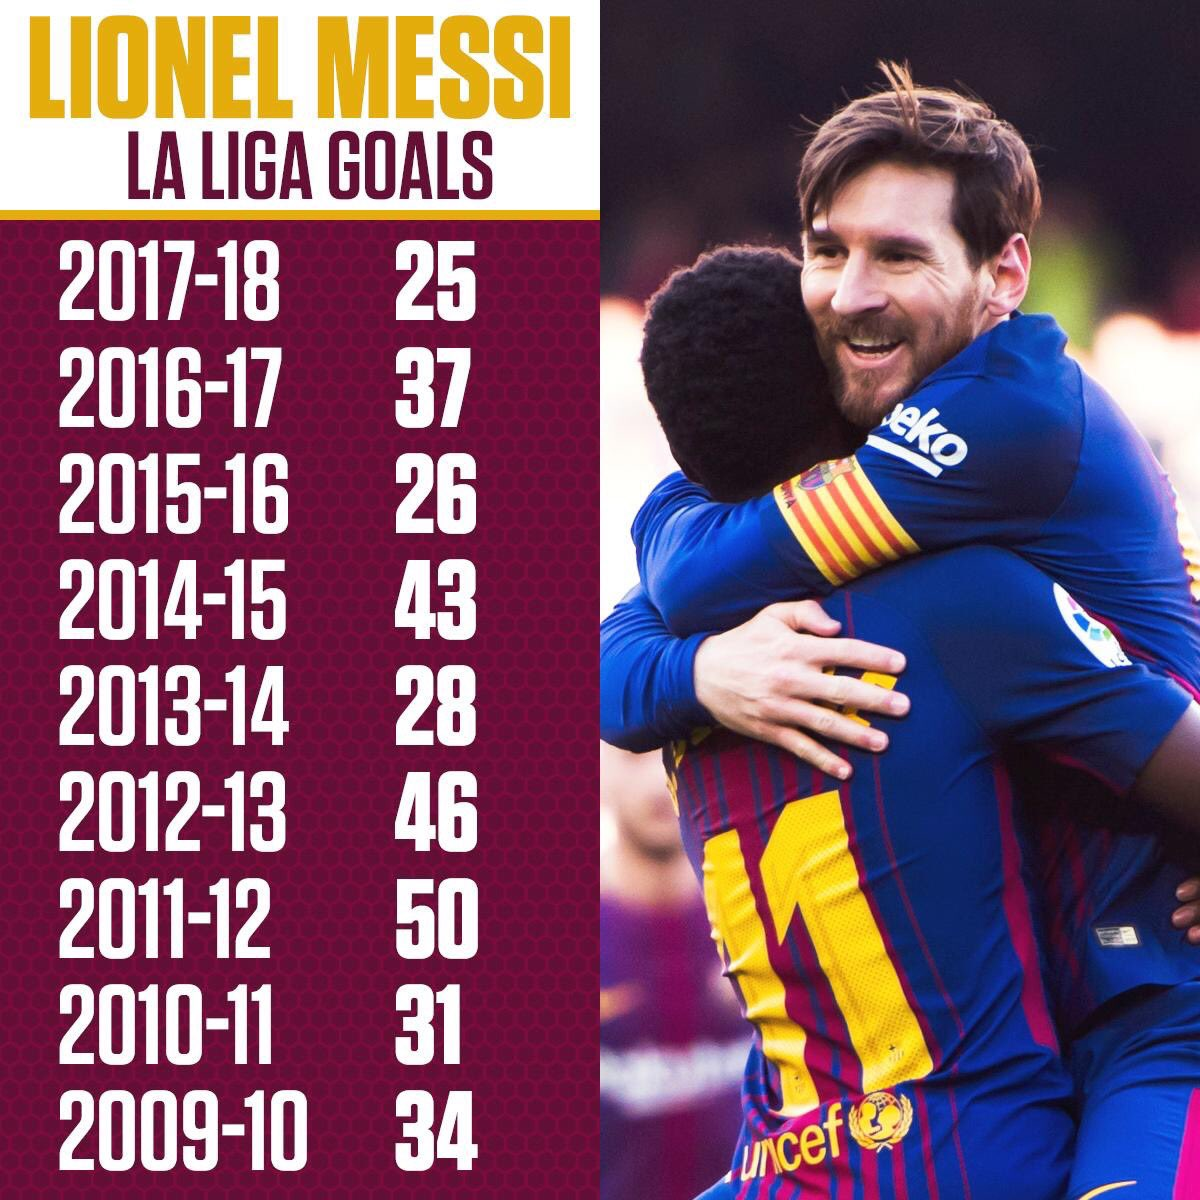 RT @barcastuff__: Infographic: For the ninth straight season, Messi has scored 25 league goals #fcblive https://t.co/v5mAYn549C